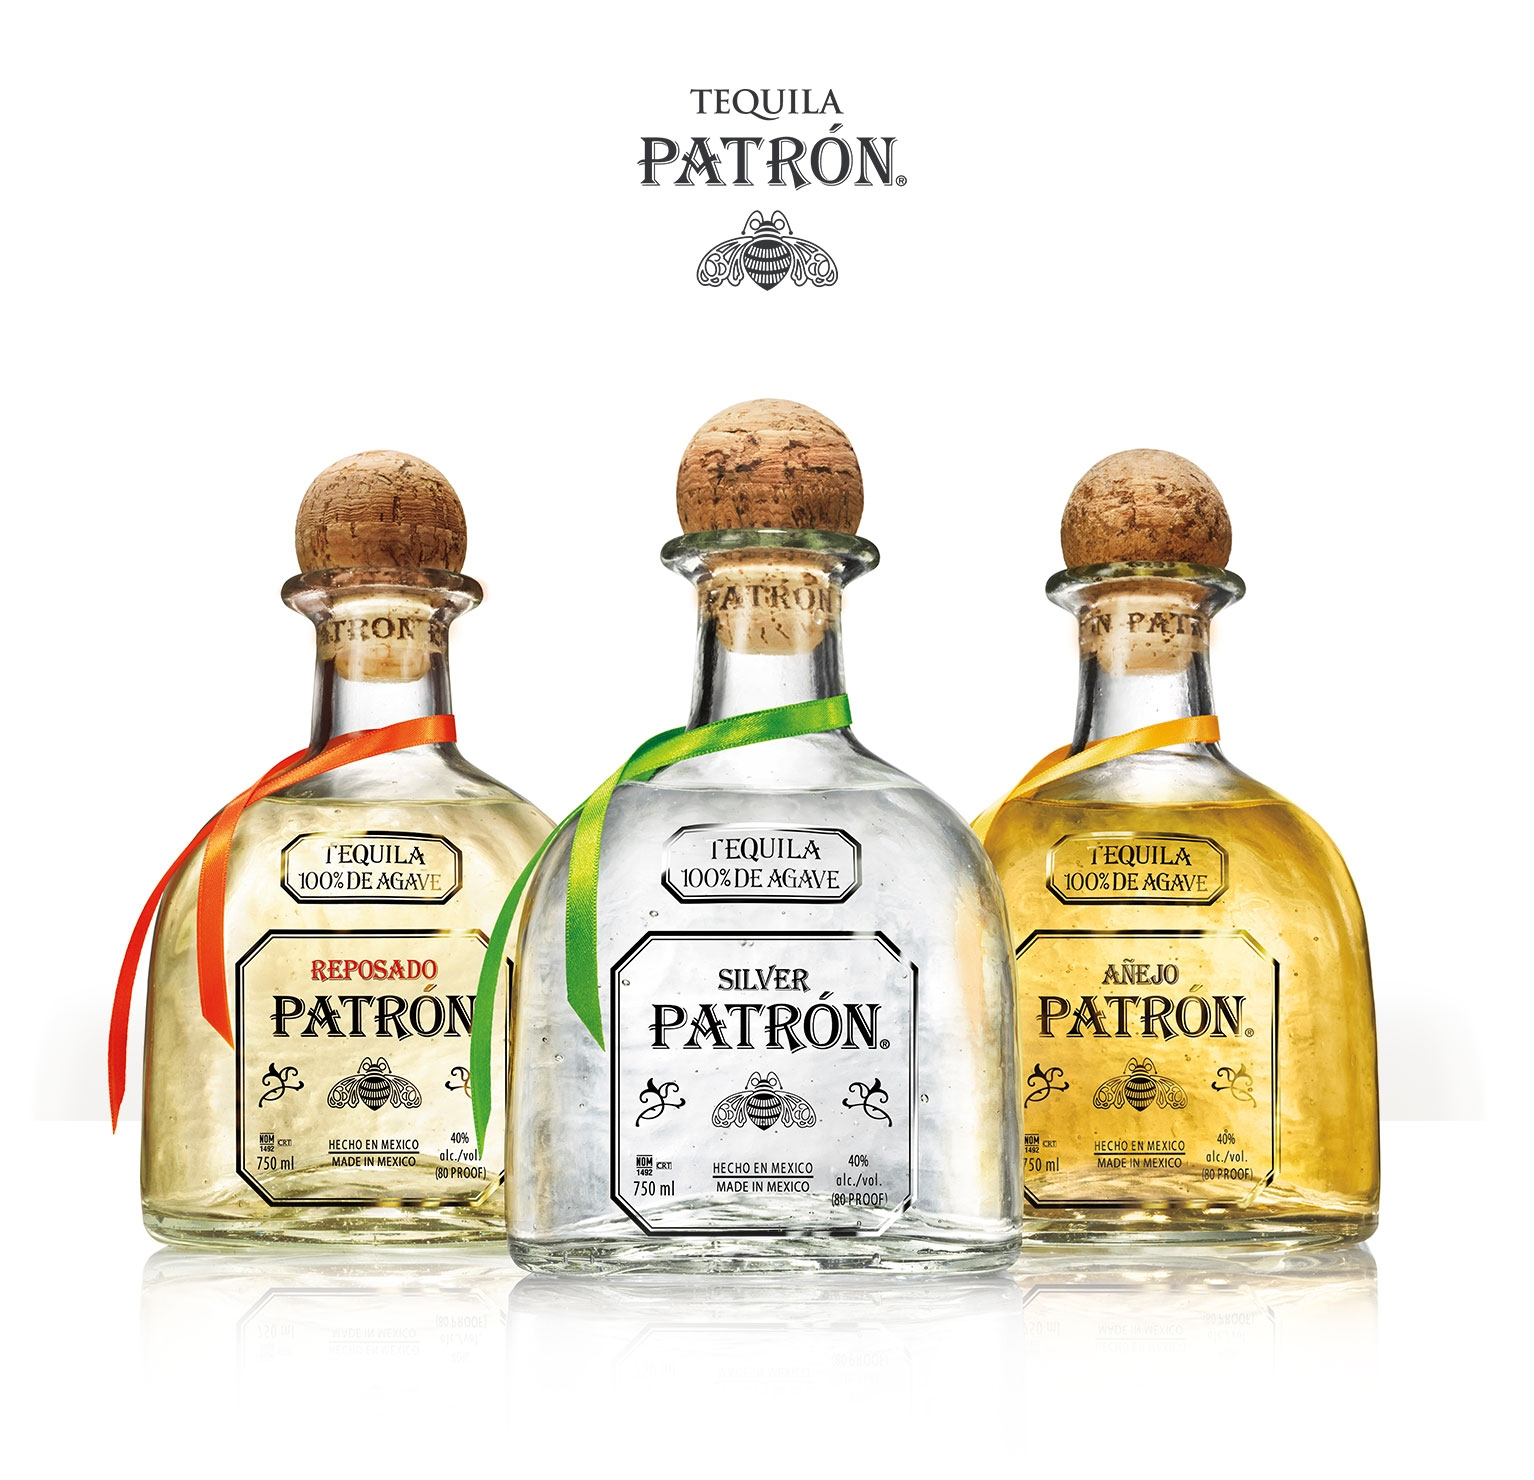 Patron Tequila Amp Mezcal Buy Online Or Send As A Gift